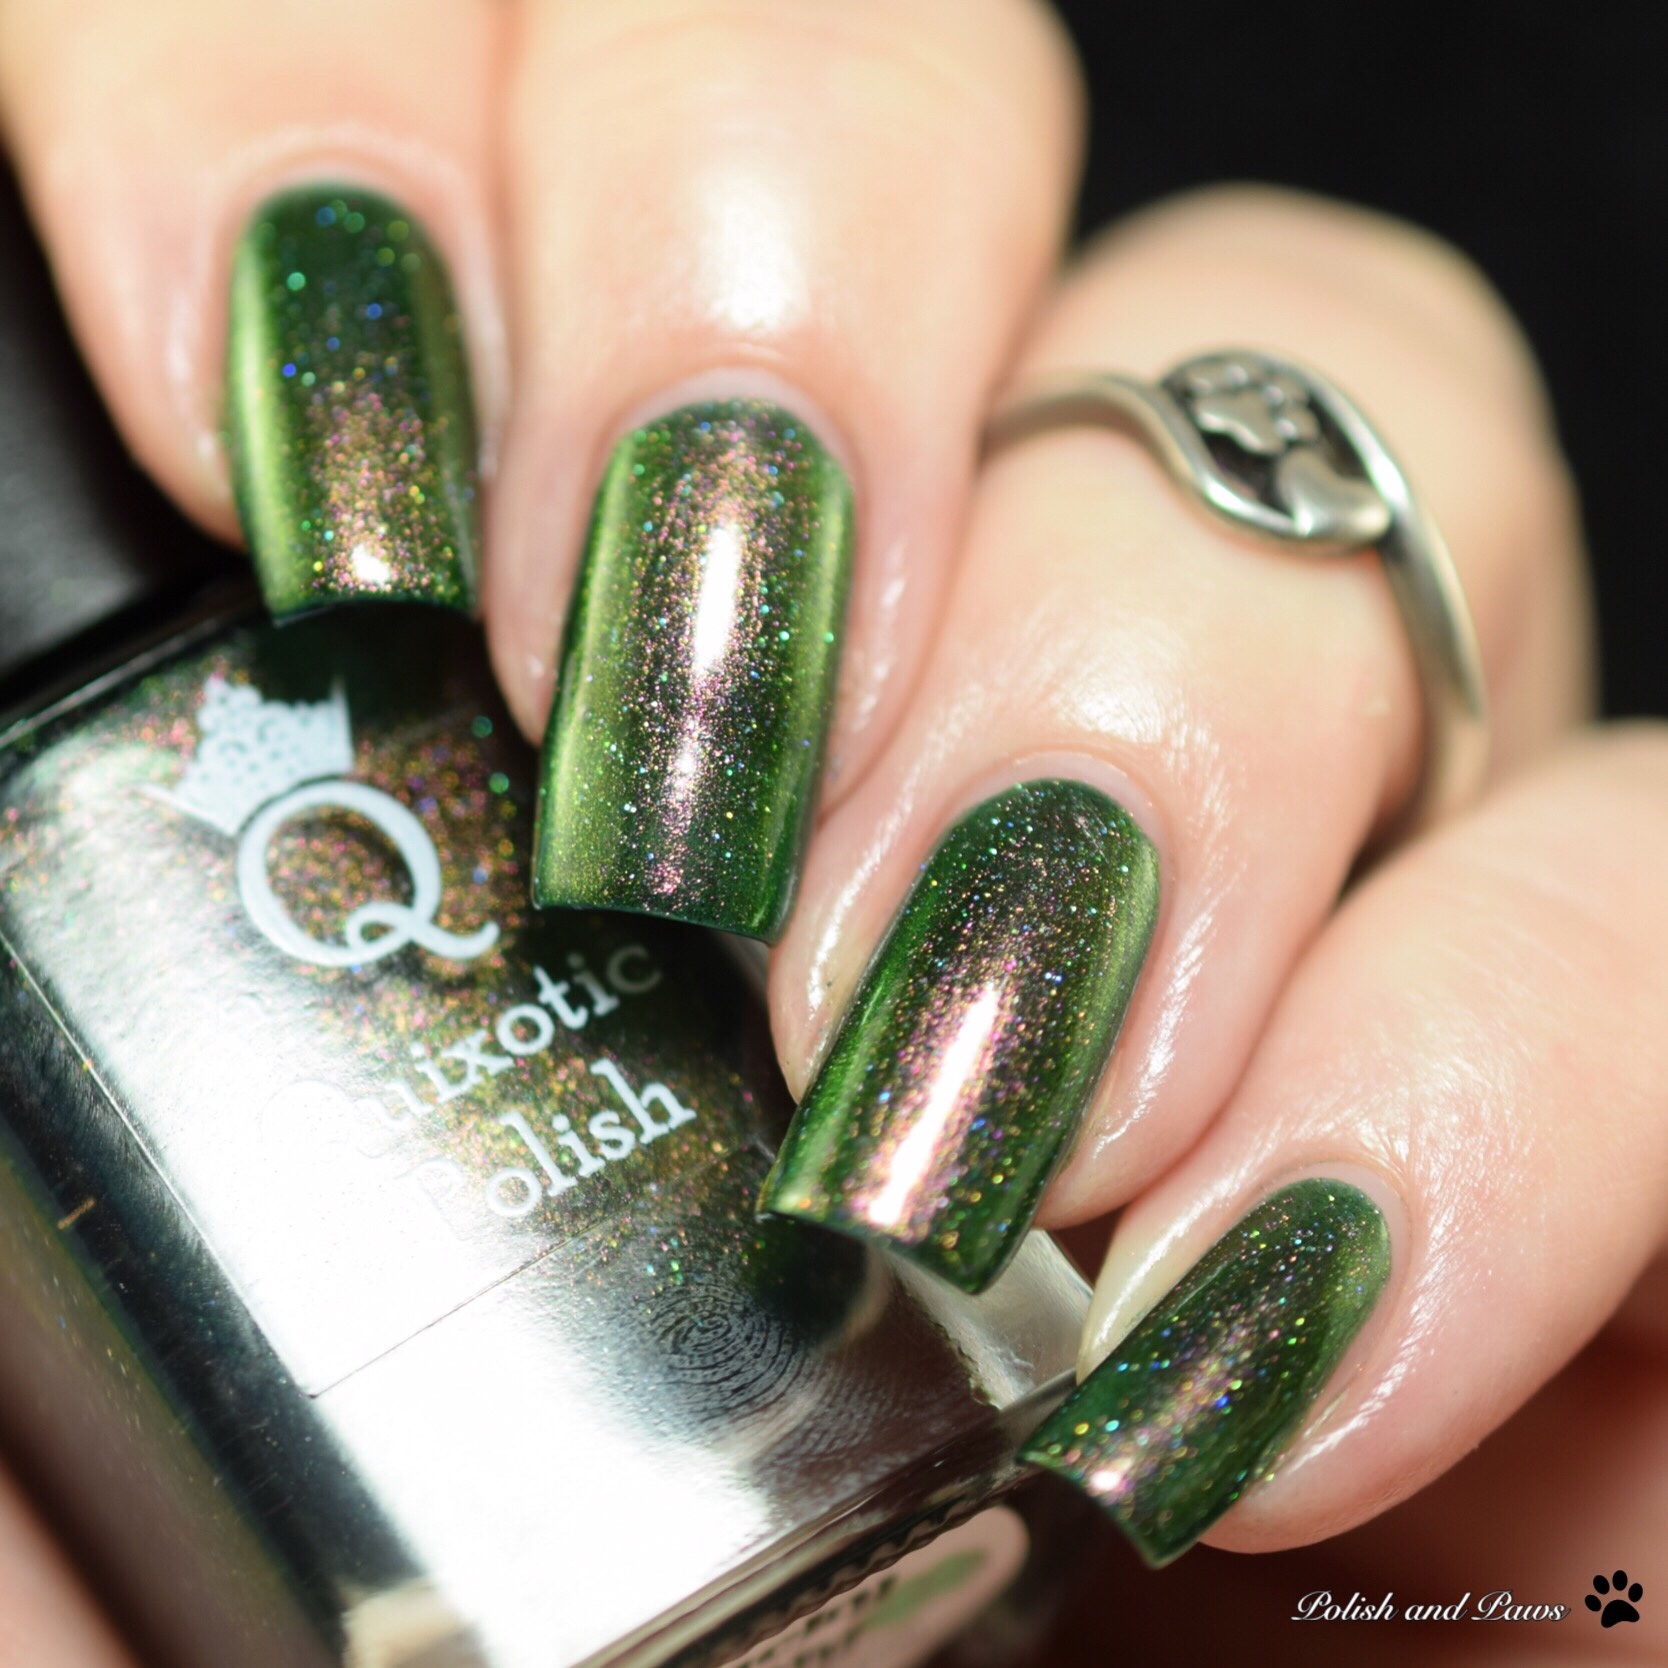 Quixotic Polish Swatch and Review | Polish and Paws